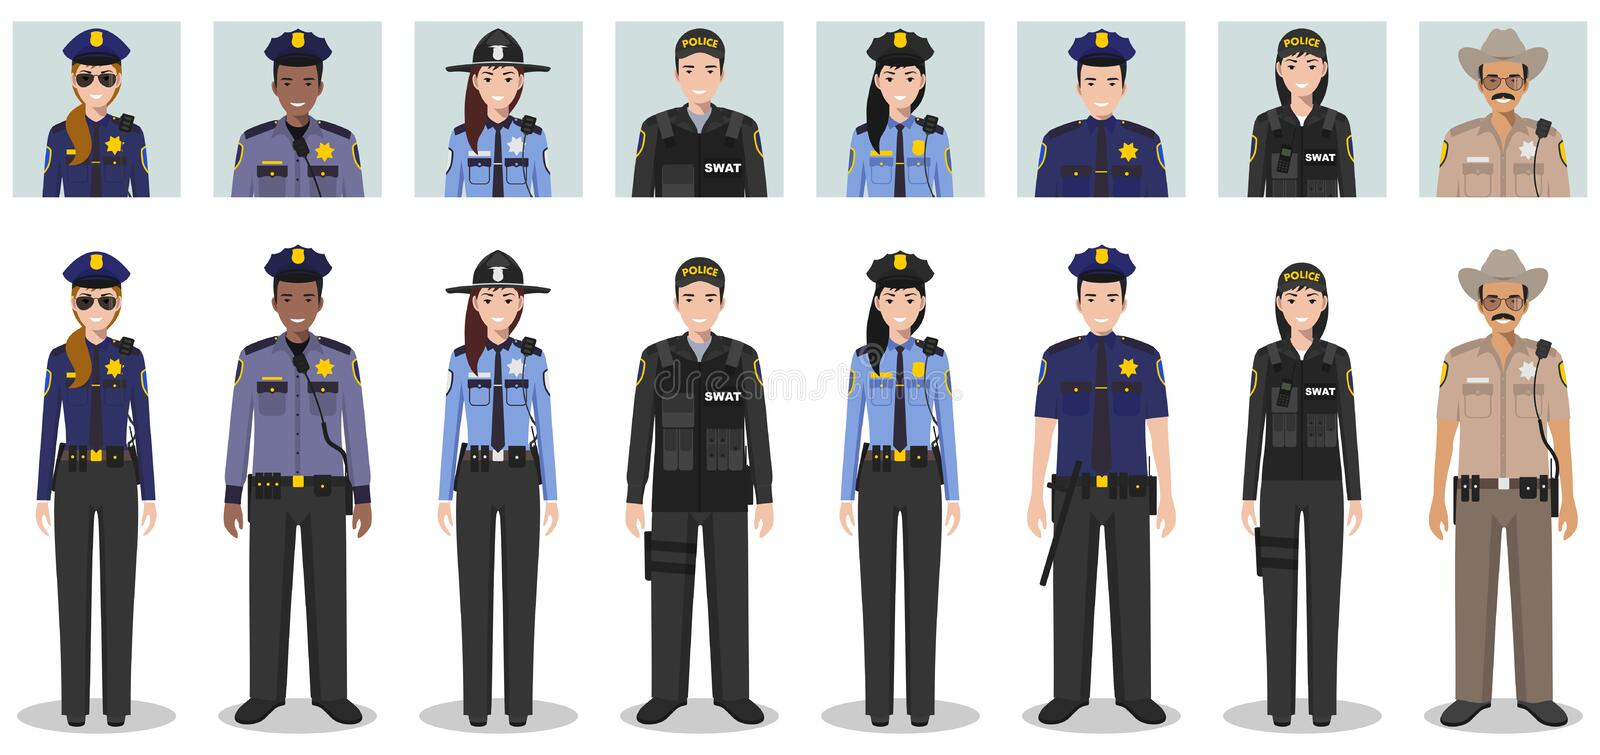 Police people concept. Set of different detailed illustration and avatars icons of SWAT officer, policeman, policewoman and sherif royalty free stock photos